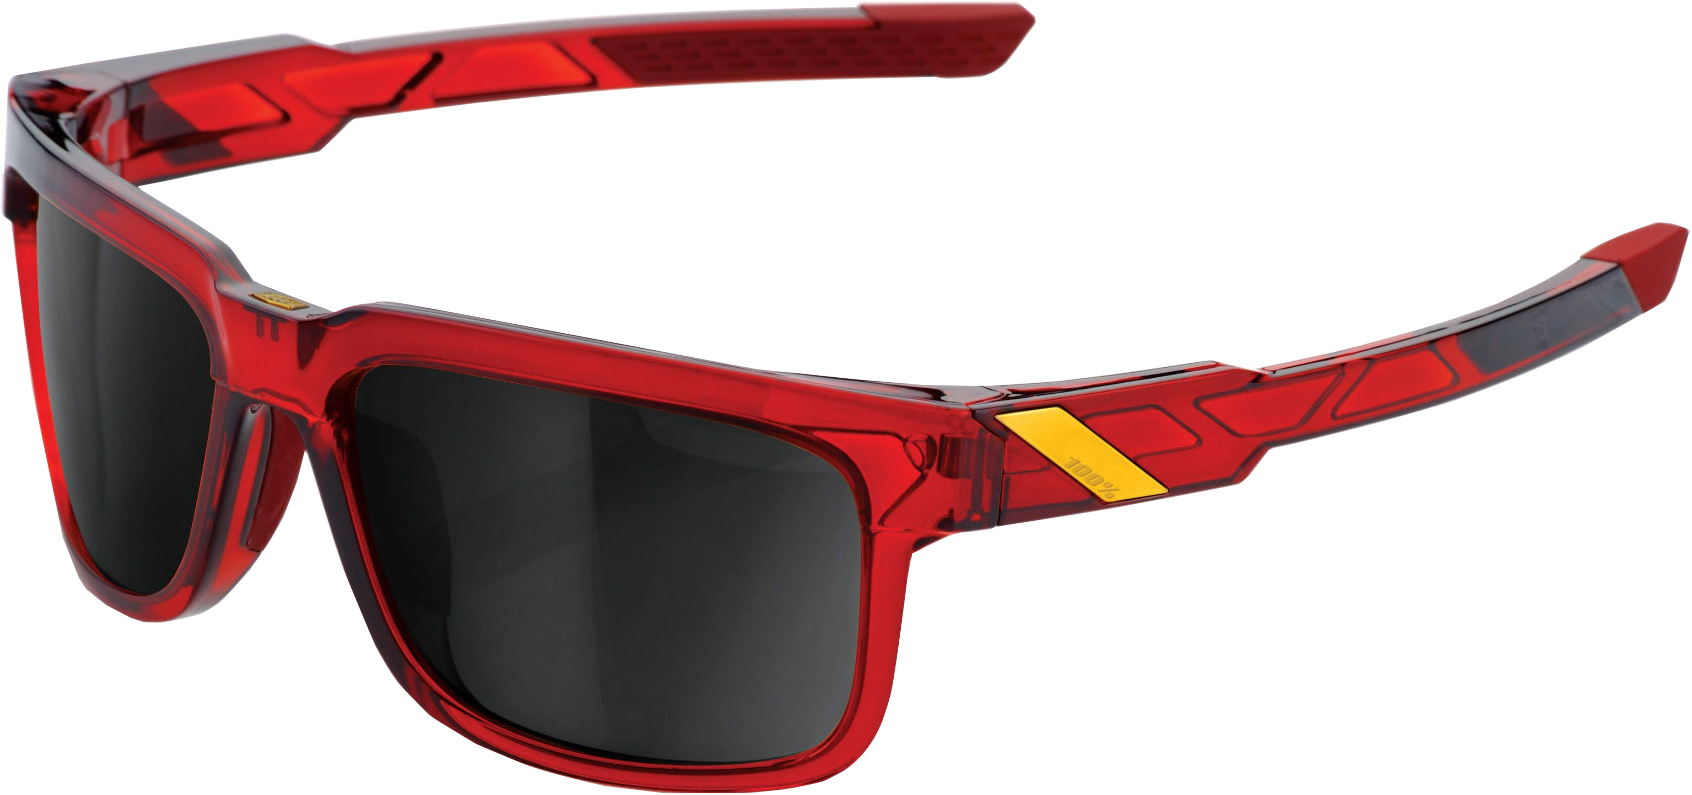 Cycling Sunglasses 100% Type-S